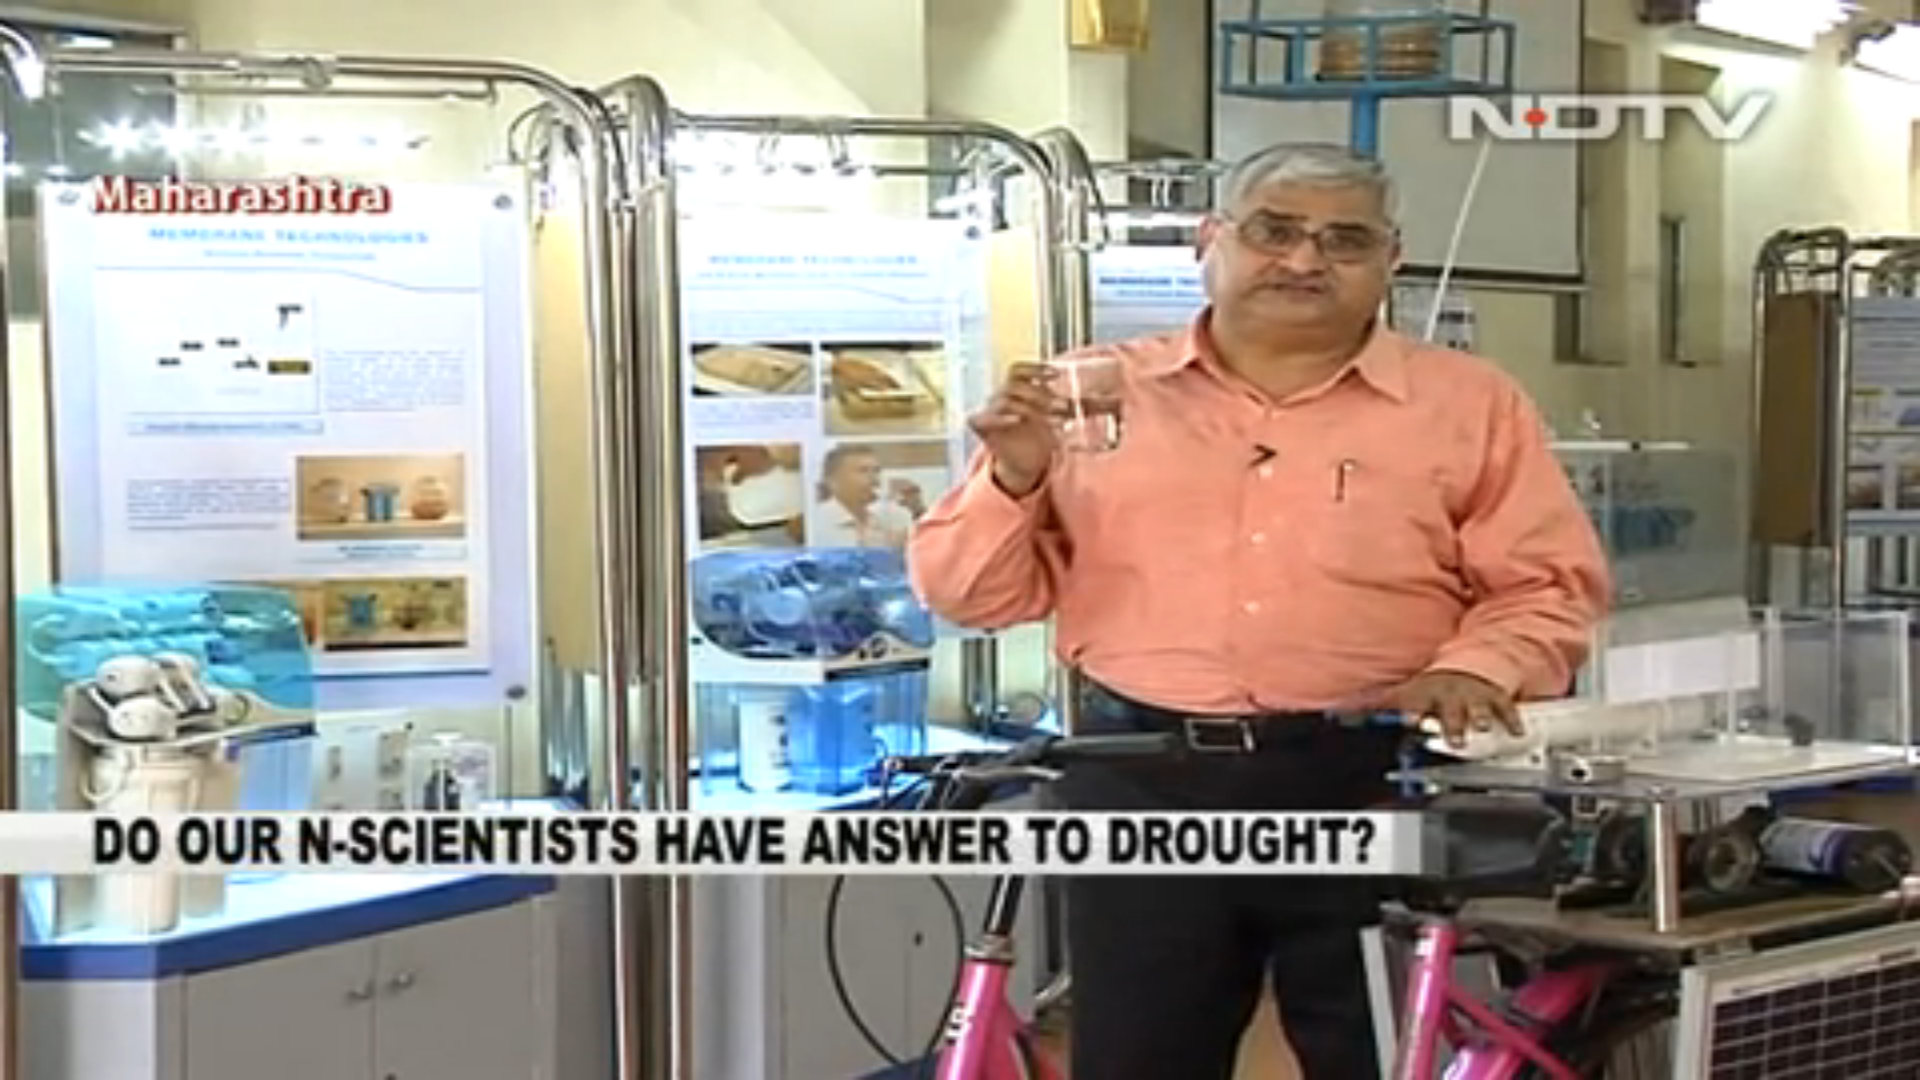 Indian Scientist Make 6 3M Liters of Drinking Water a Day From Sea